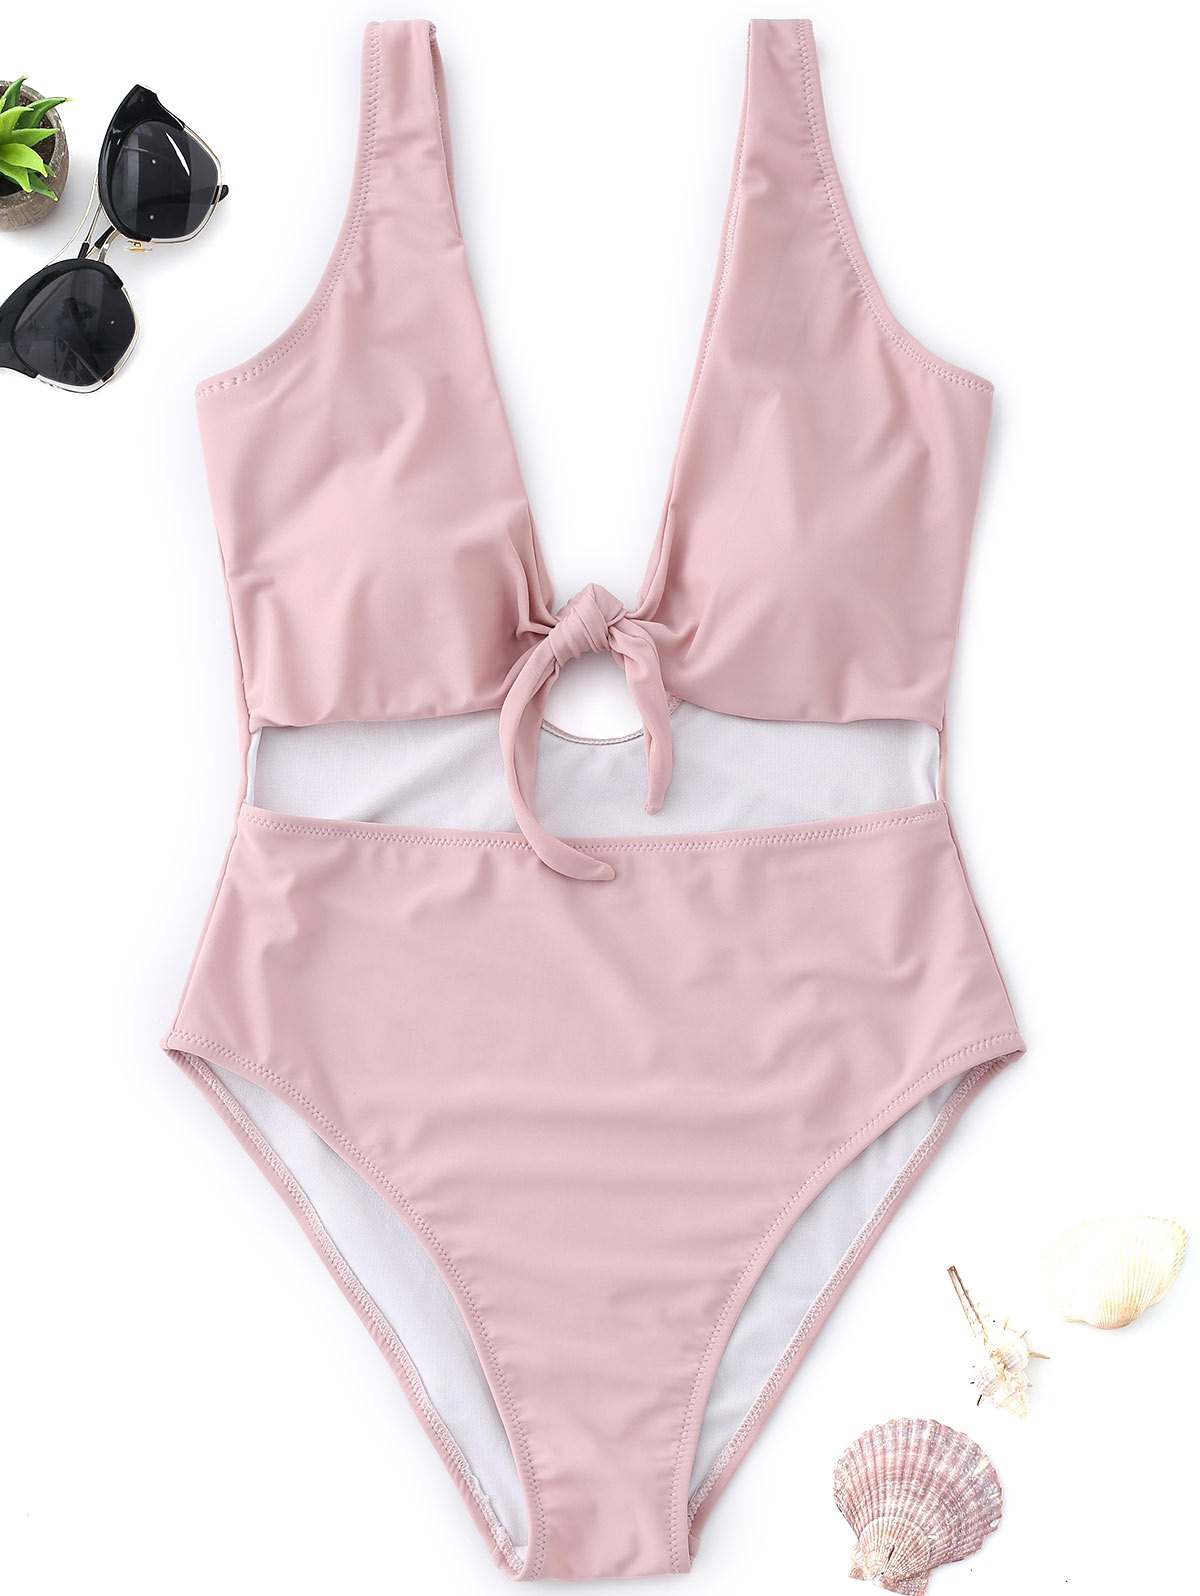 Knot Cutout High Cut Swimsuit - PINK S